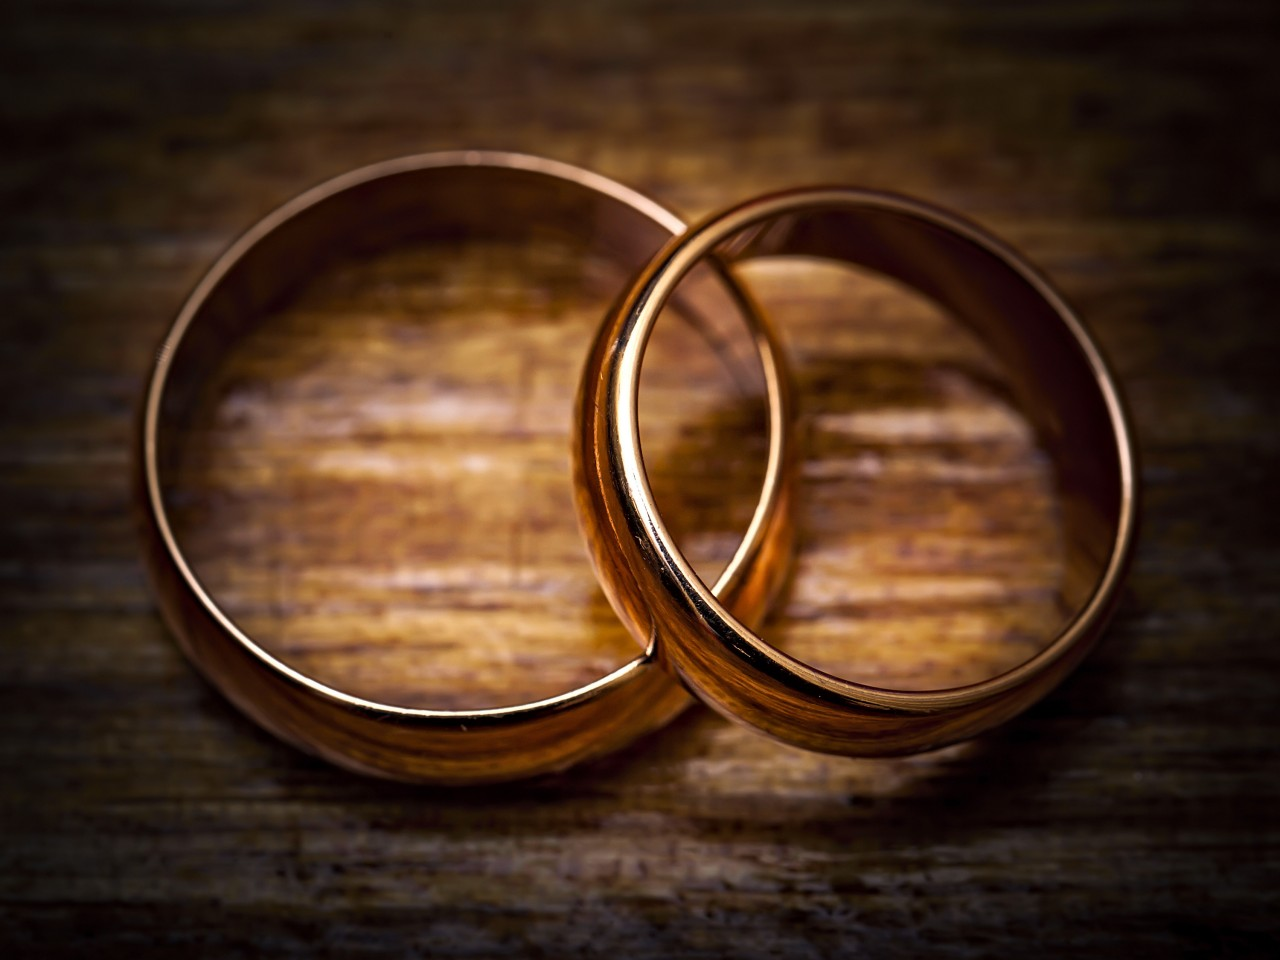 Conventional Thinking: Marriage follies